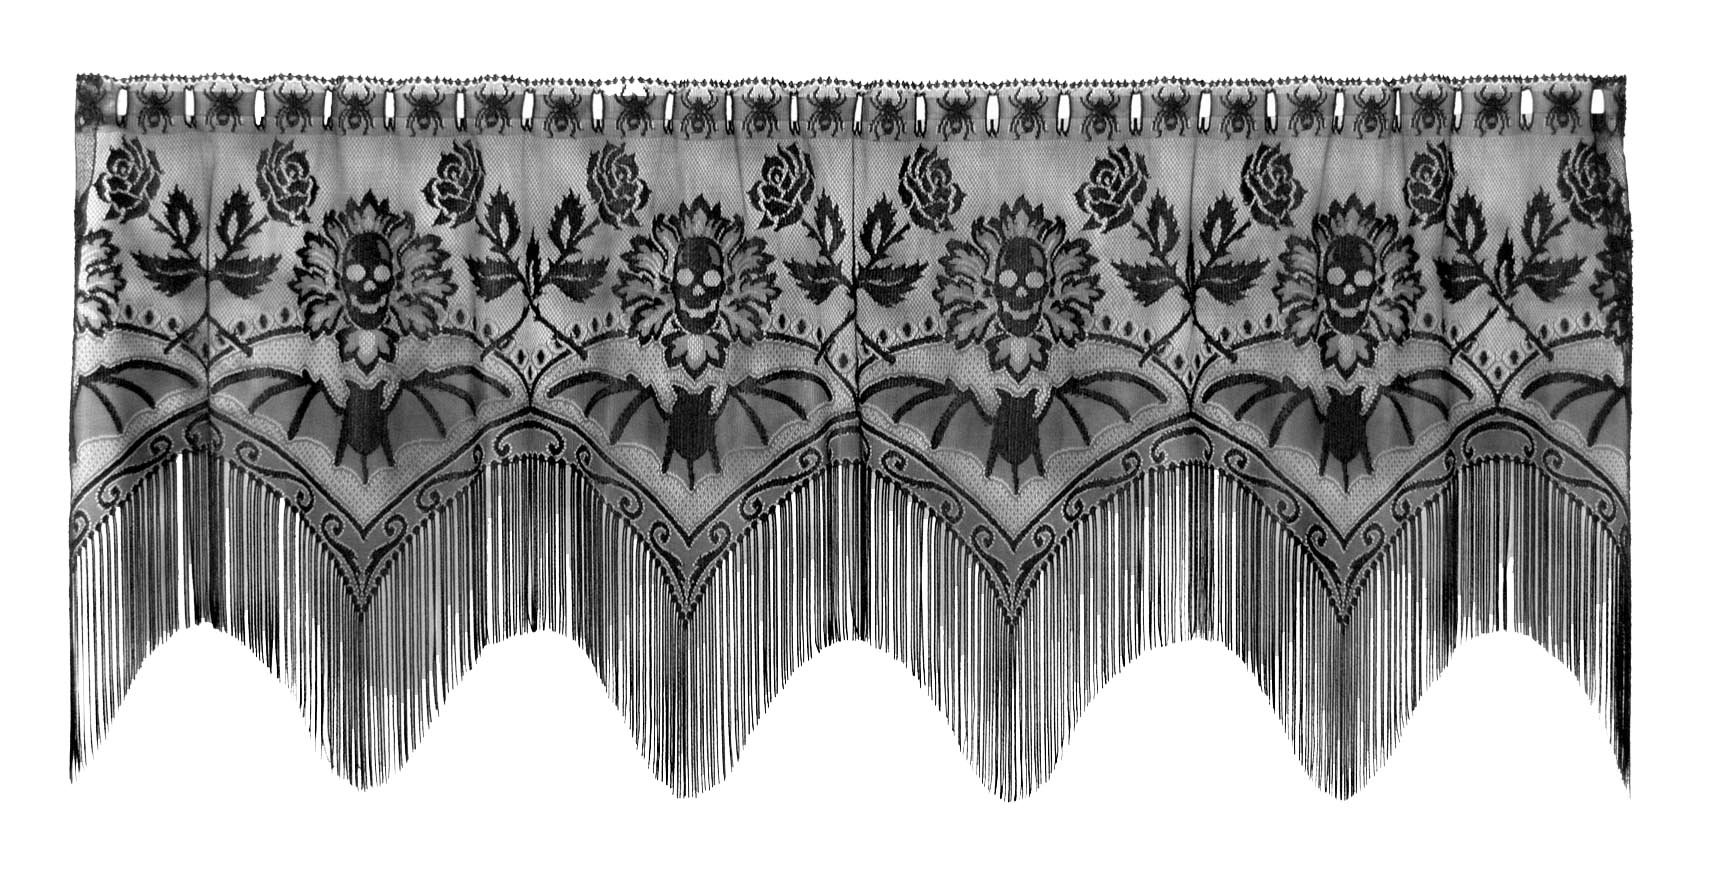 Heritage Lace Gothic Black Lace Halloween Gala 4 Way, Mantle Scarf, Lampshade Topper, Window